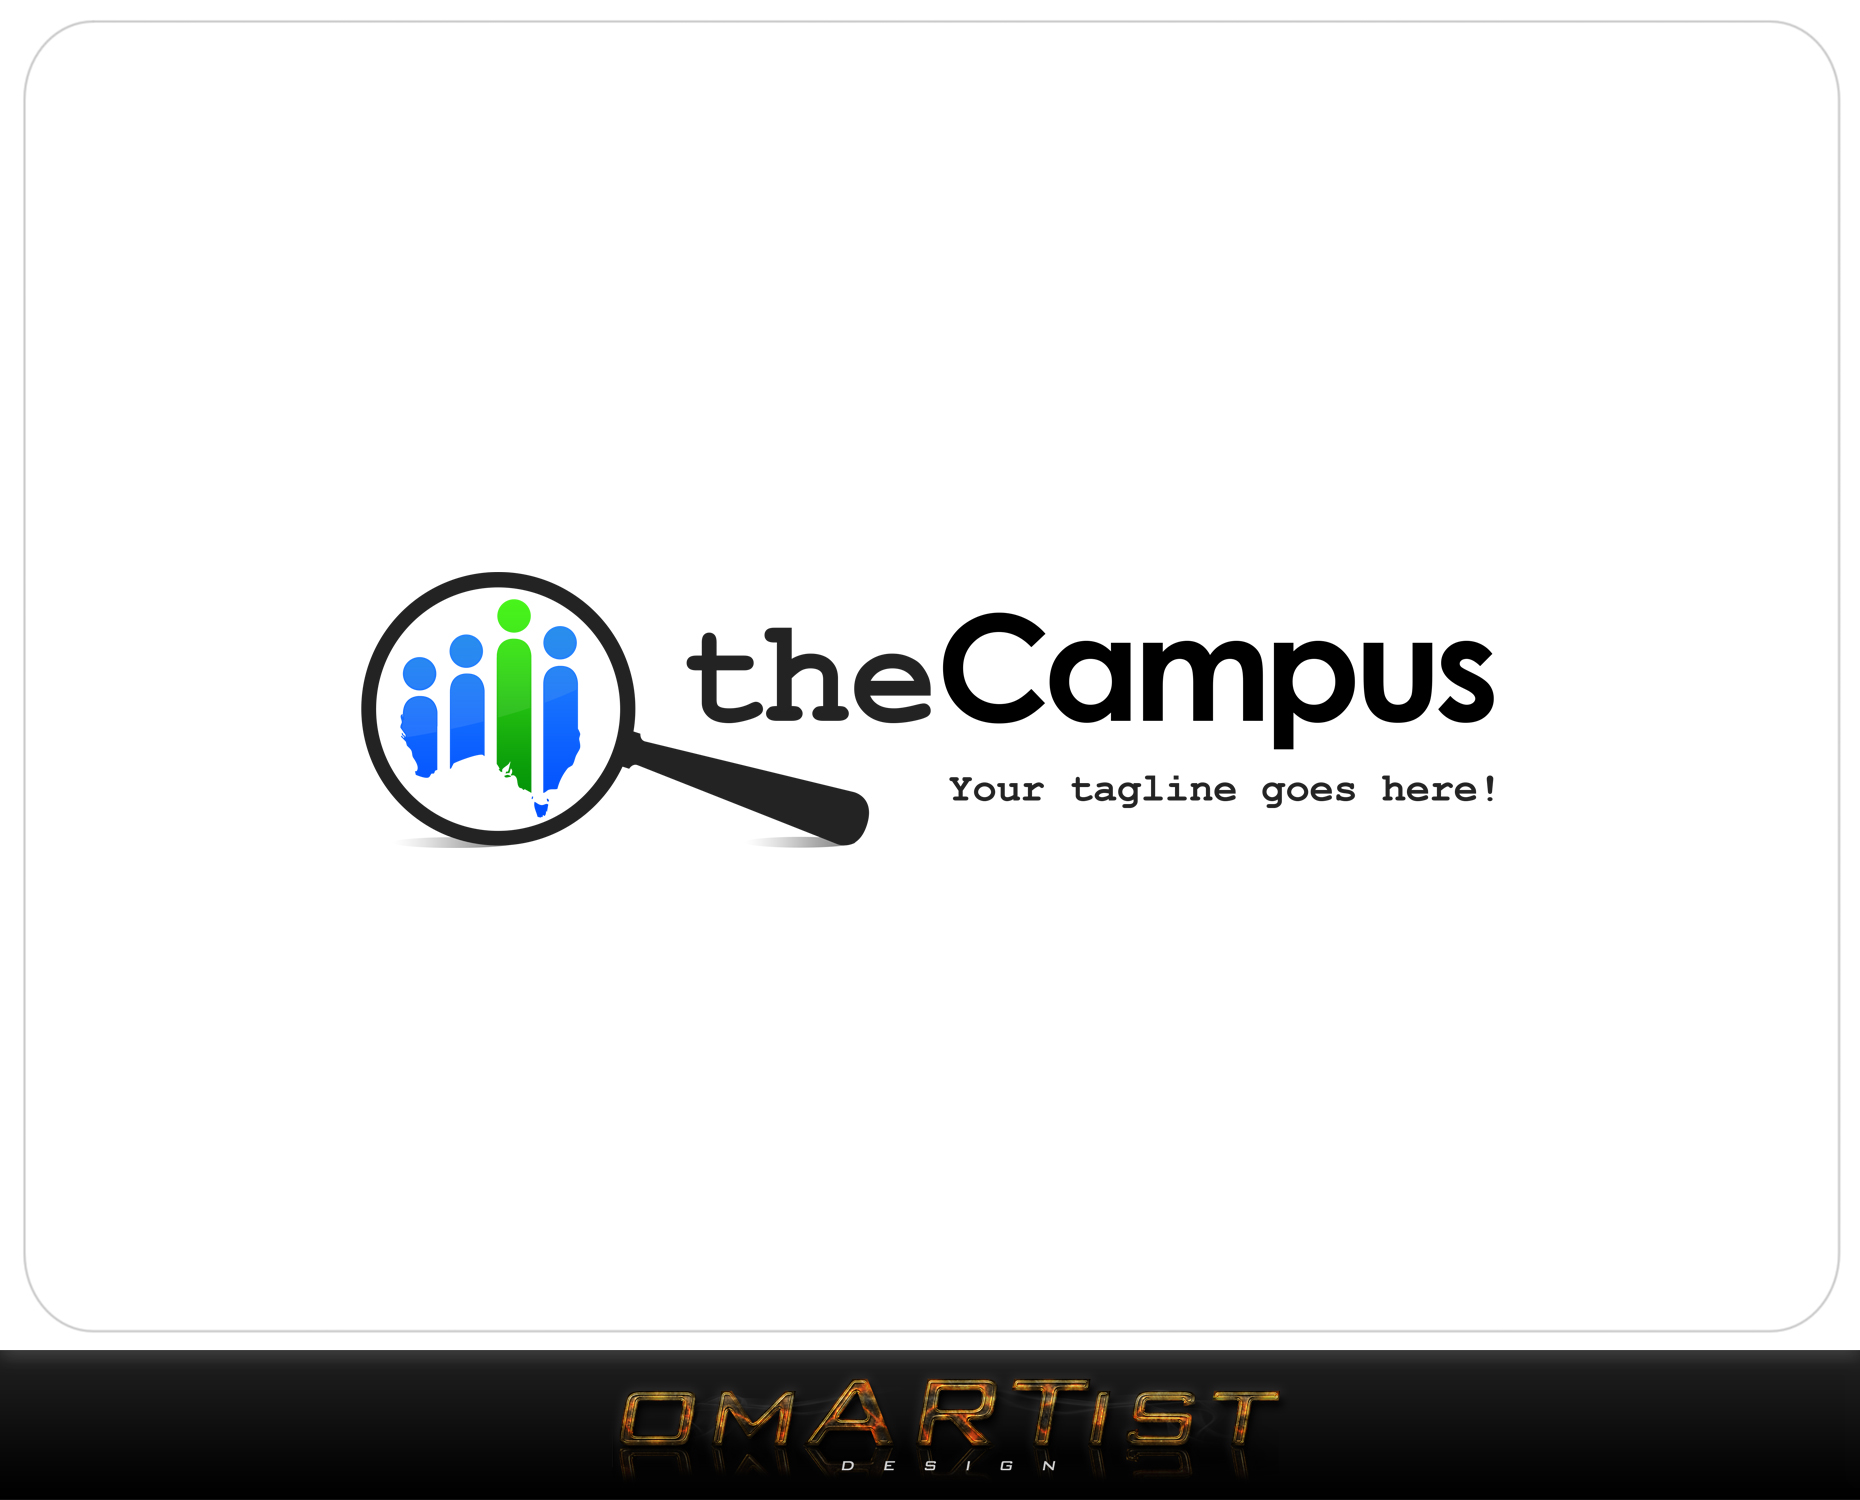 Logo Design by omARTist - Entry No. 1 in the Logo Design Contest theCampus Logo Design.